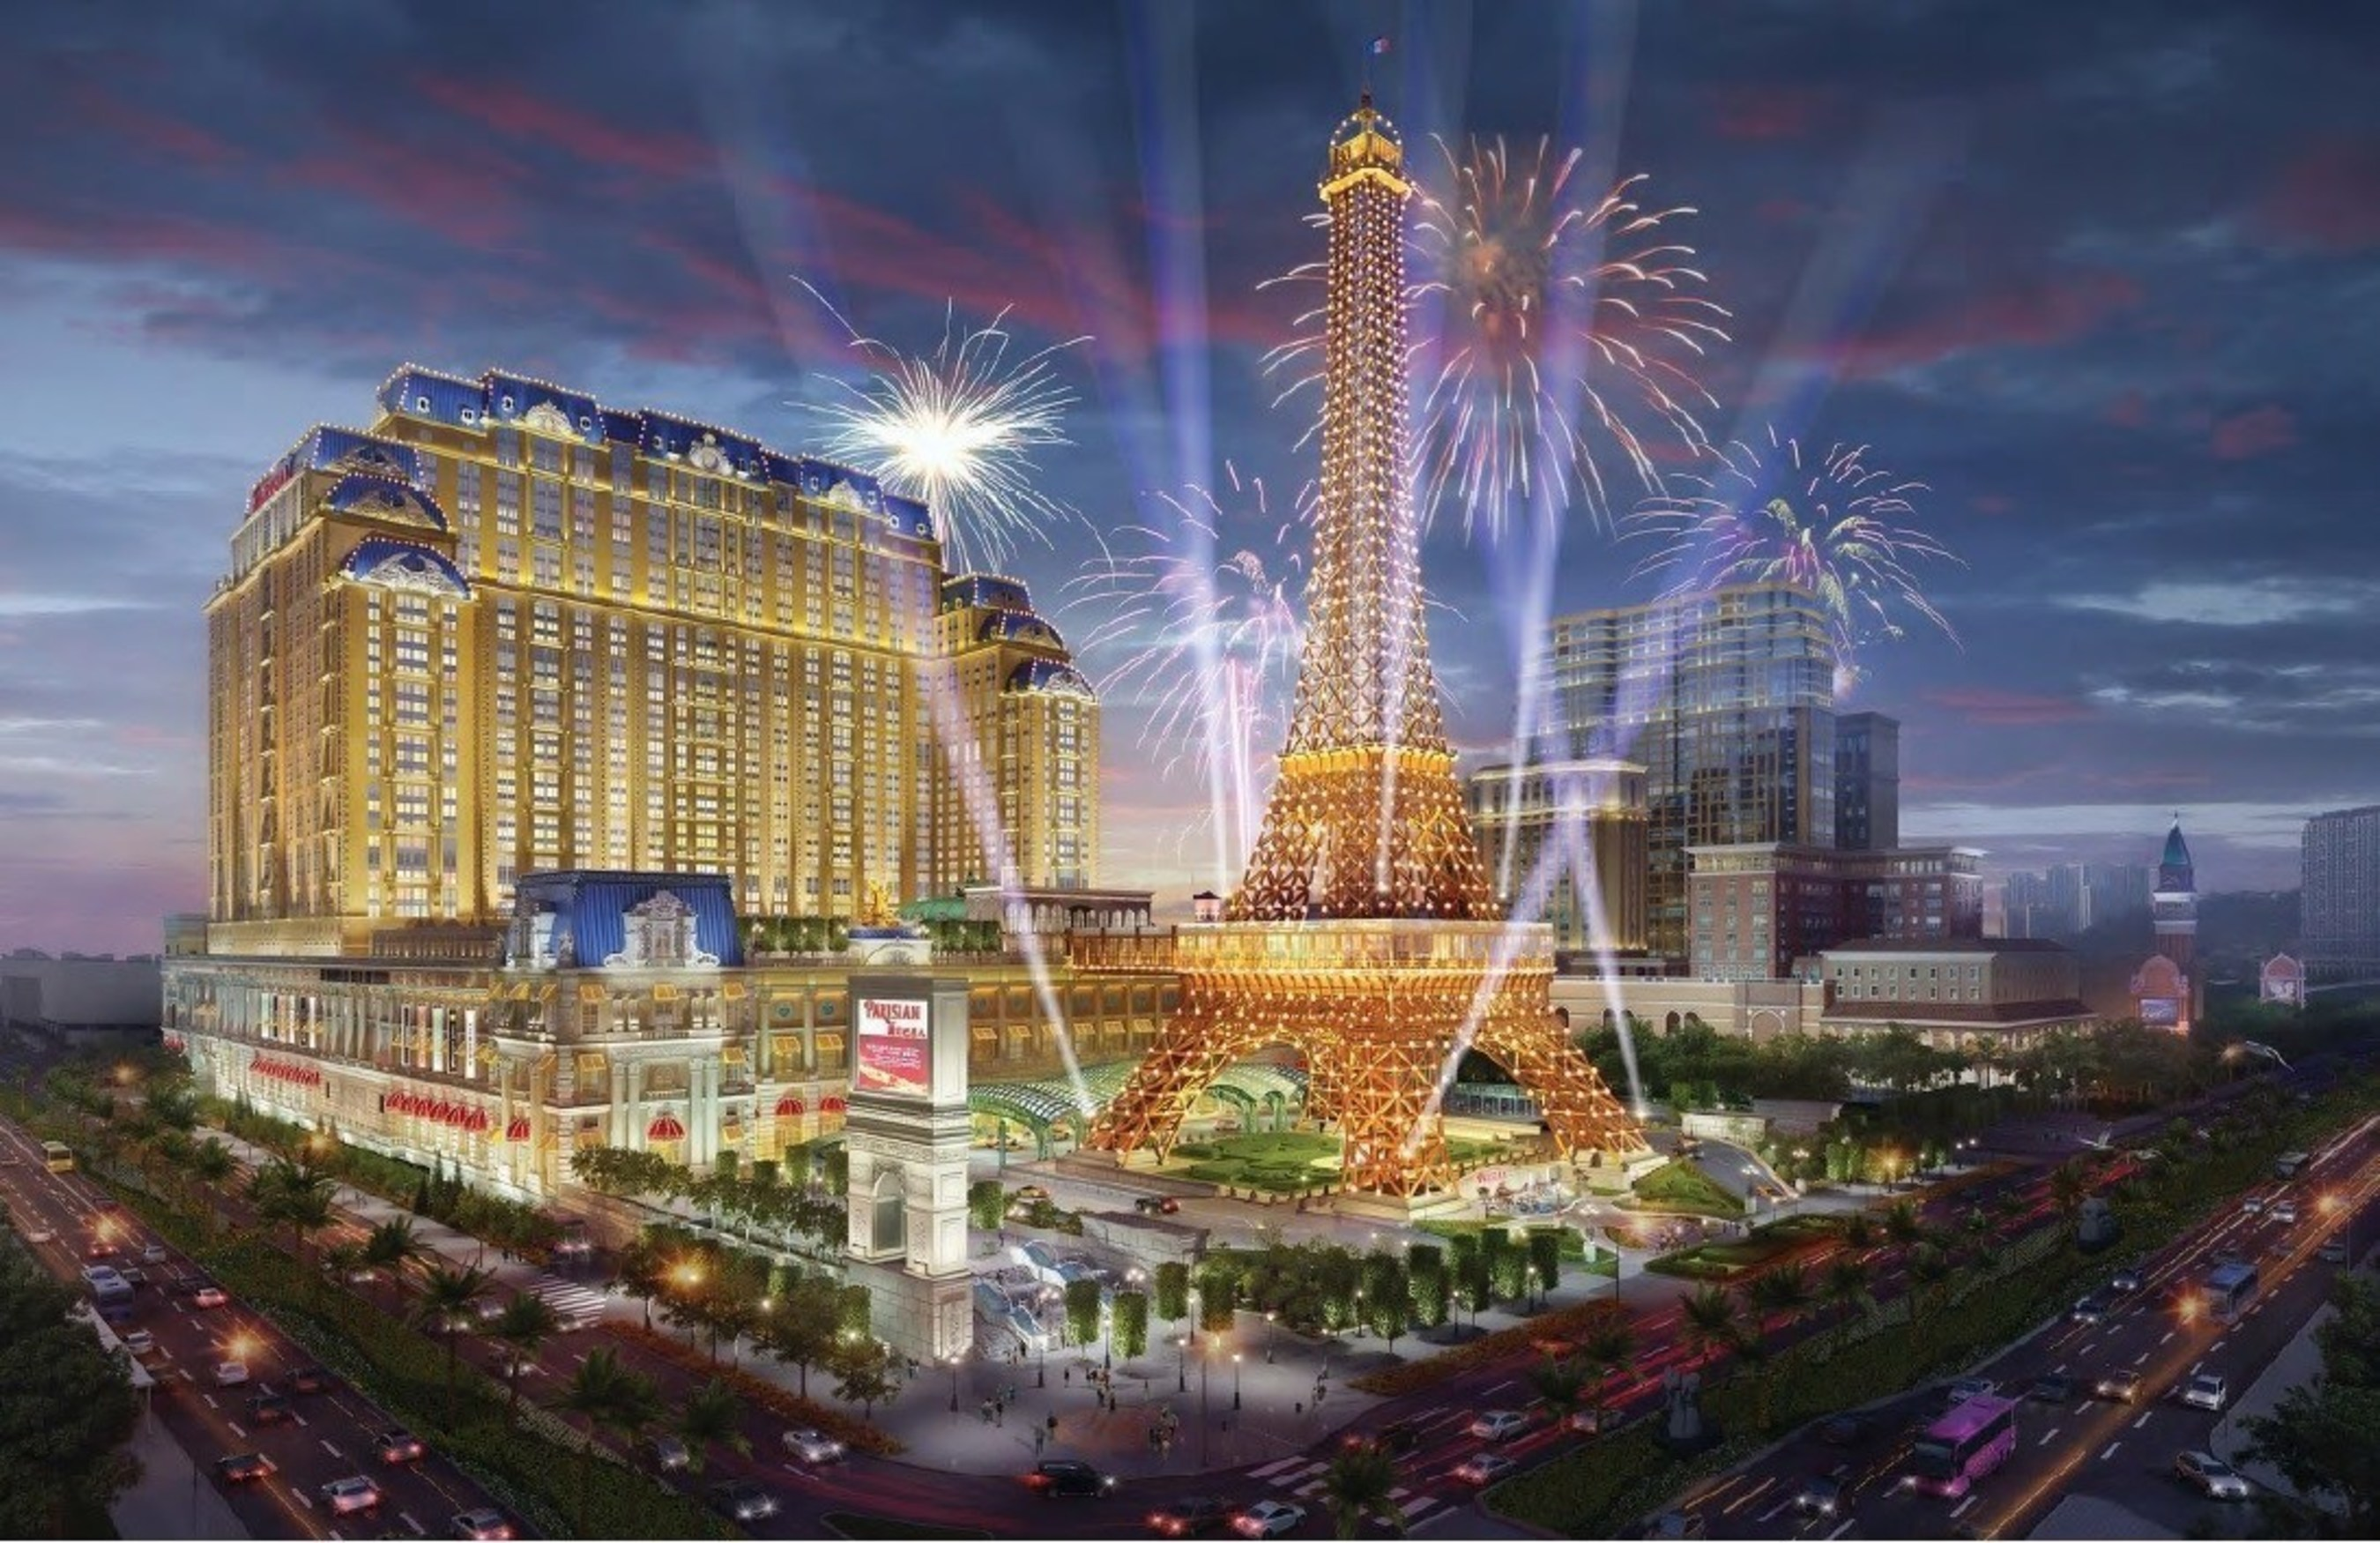 Sands China Ltd. will open The Parisian Macao, its latest integrated resort, on Tuesday, Sept. 13, 2016. Featuring a full array of integrated resort facilities, the property brings the company's portfolio to 13,000 hotel rooms, more than 850 duty free shops, Macao's most comprehensive MICE offering, more than 160 food and beverage outlets and restaurants, along with world-class entertainment.